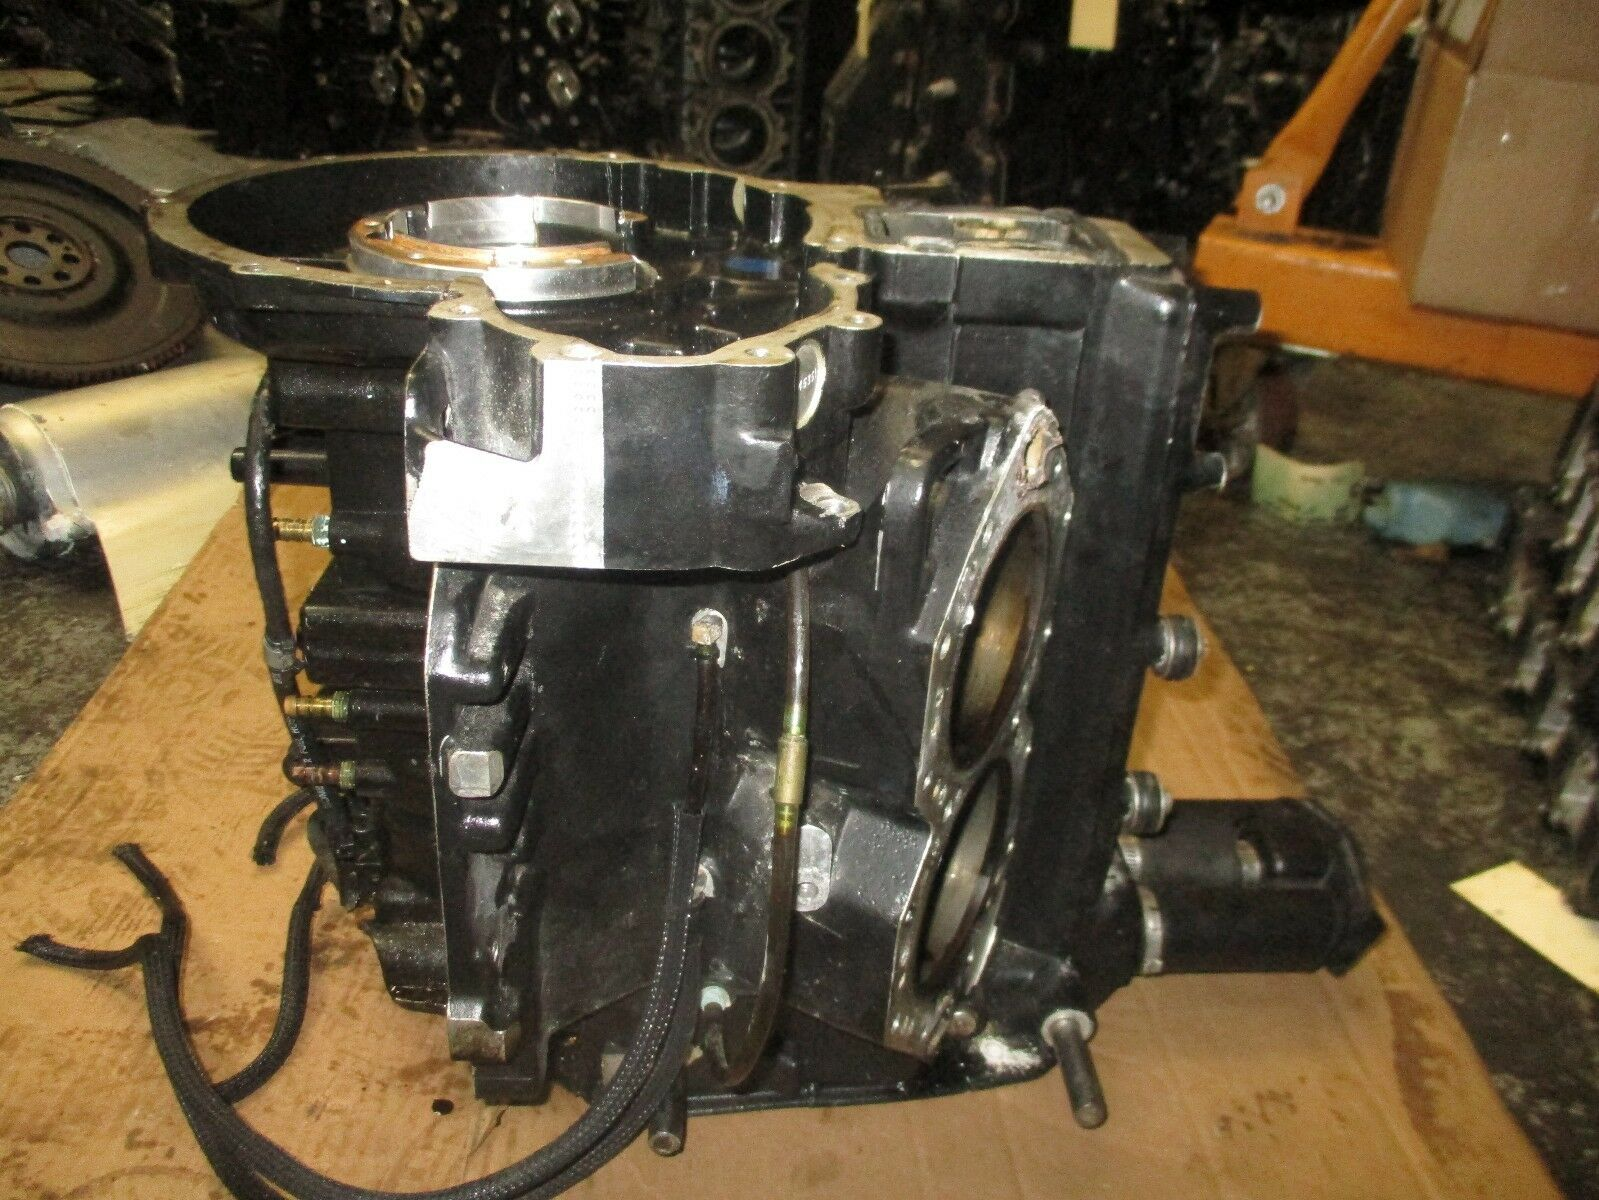 2003 Evinrude outboard 115hp Ficht crankcase block 1 of 7Only 1 available  ...